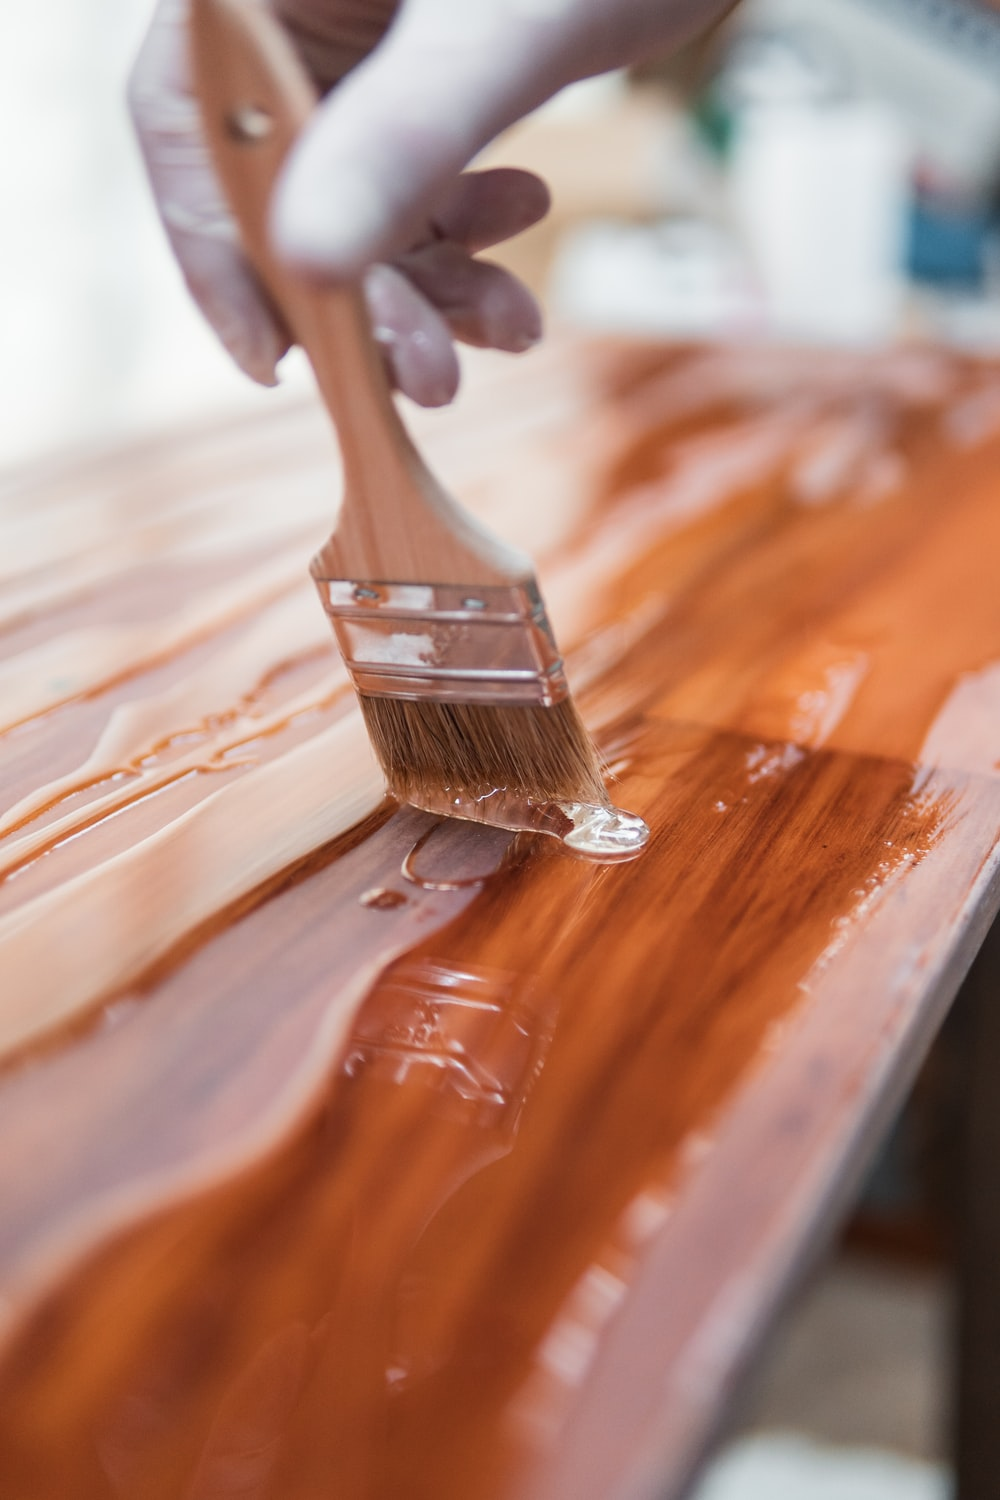 Brown Wooden Handle Brush On Brown Wooden Table